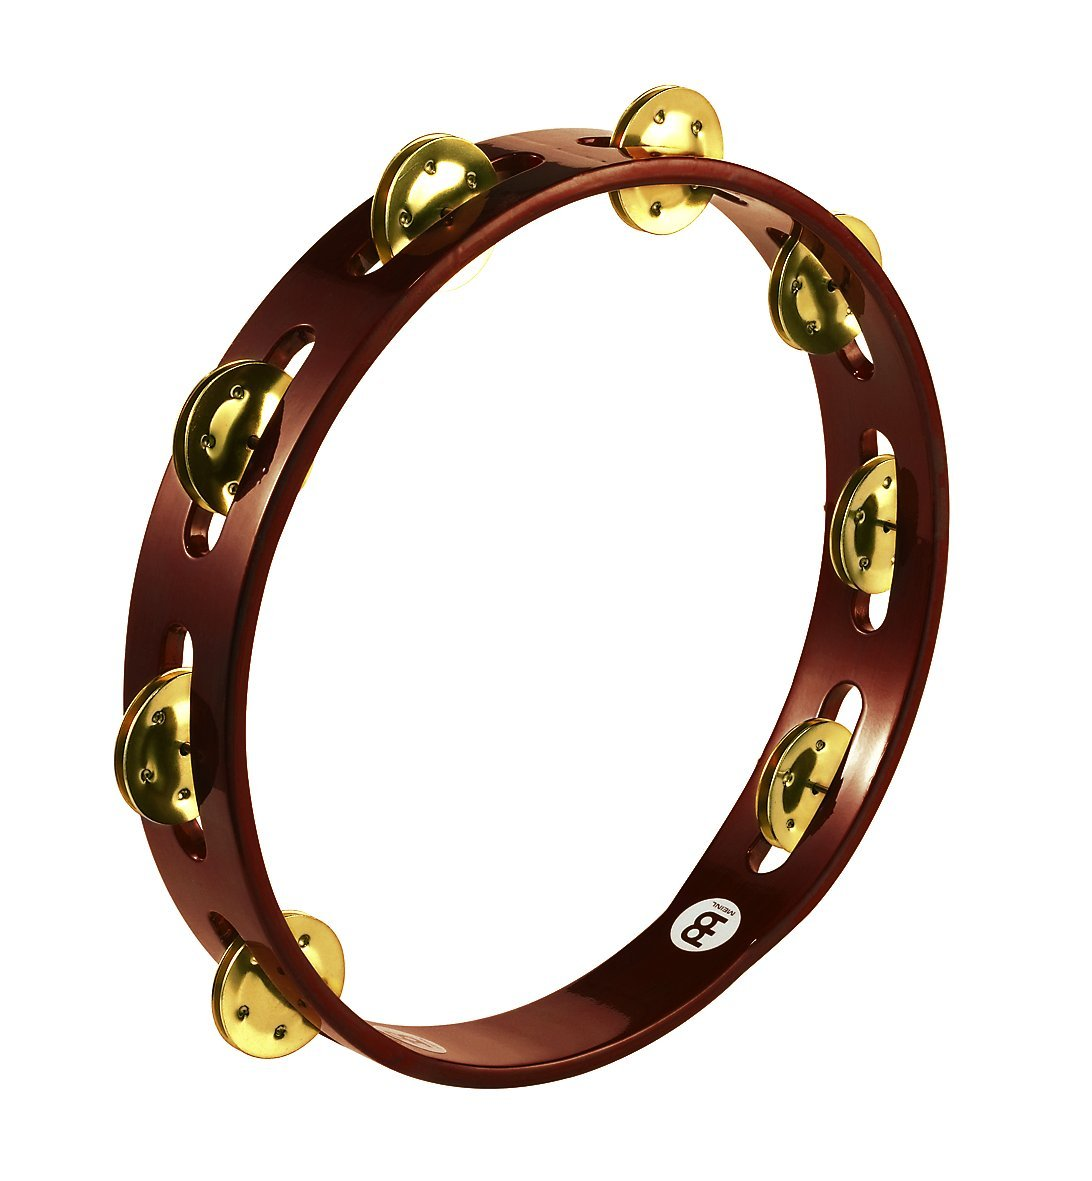 Meinl Percussion TA1B-AB Traditional 10-Inch Wood Tambourine with Single Row Brass Jingles